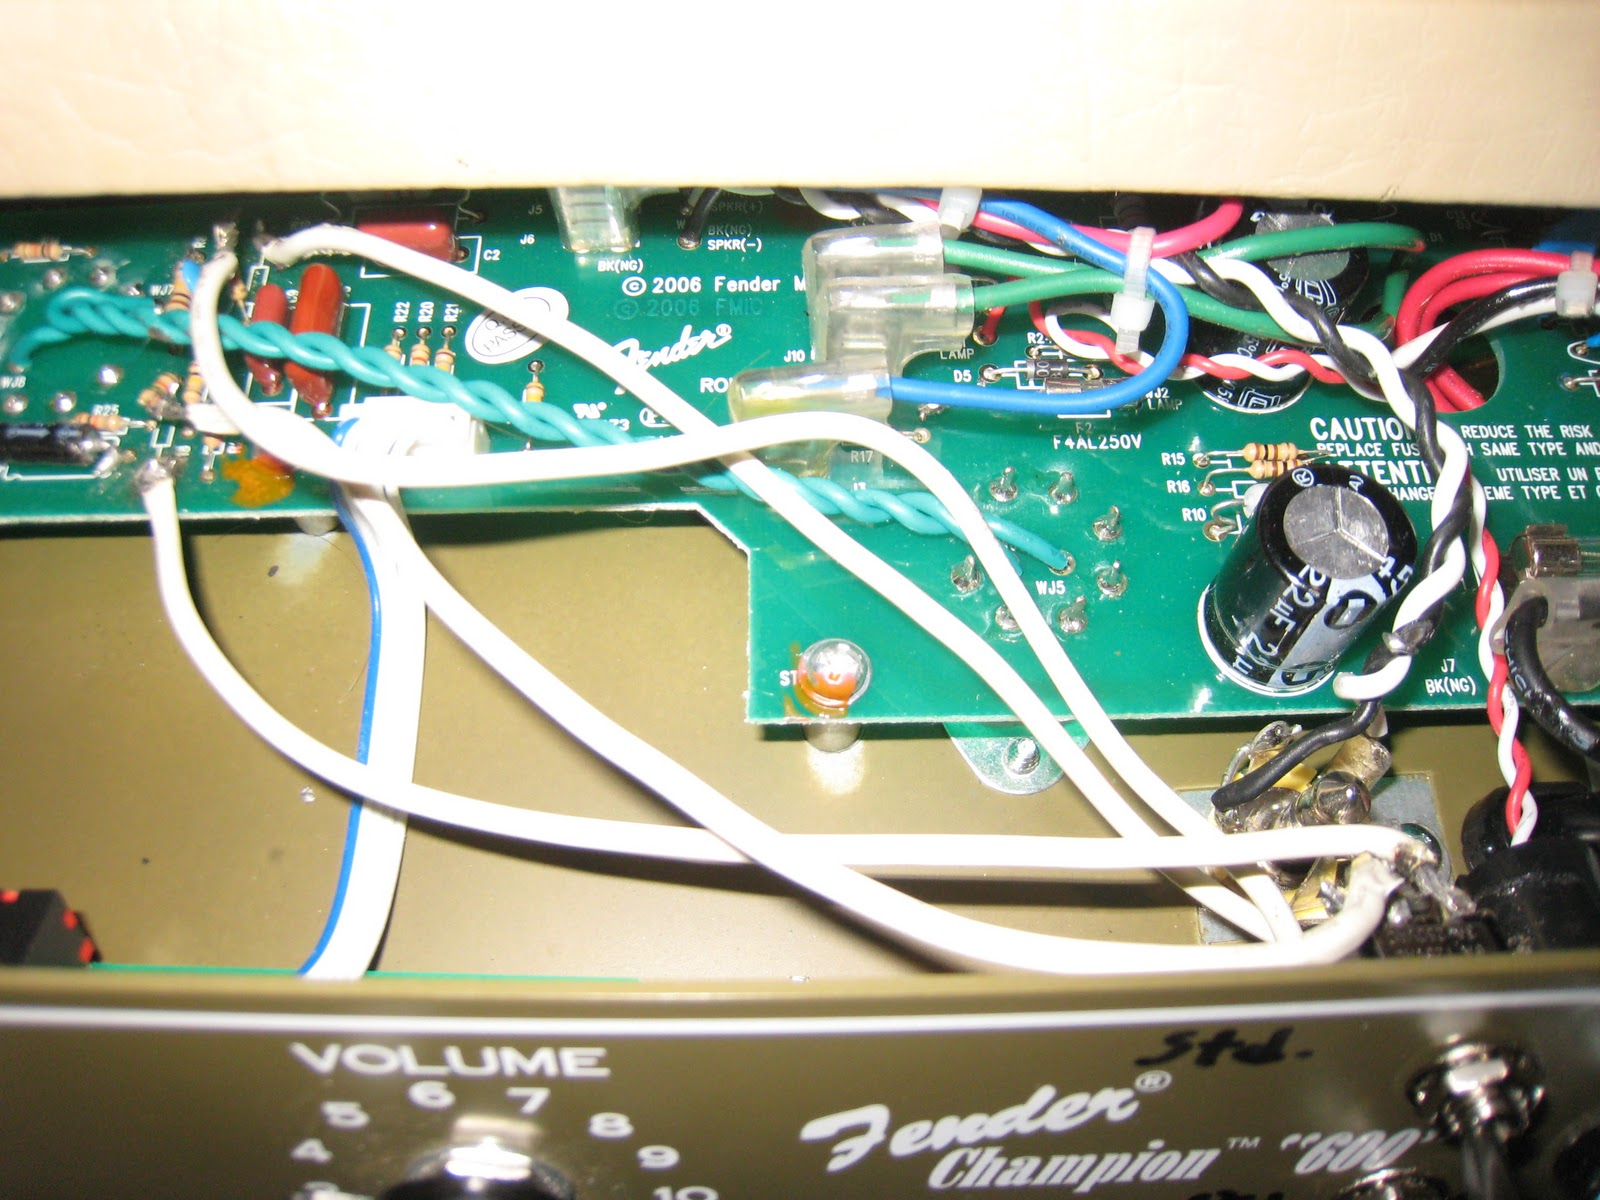 The Old Weird America Modding Fender 600 Champion Champ Wiring Diagrams Wires Leading To Resisters And Breadboard I Made Sure Went Same Parts In Relation Switch So Theyd Both Be Off